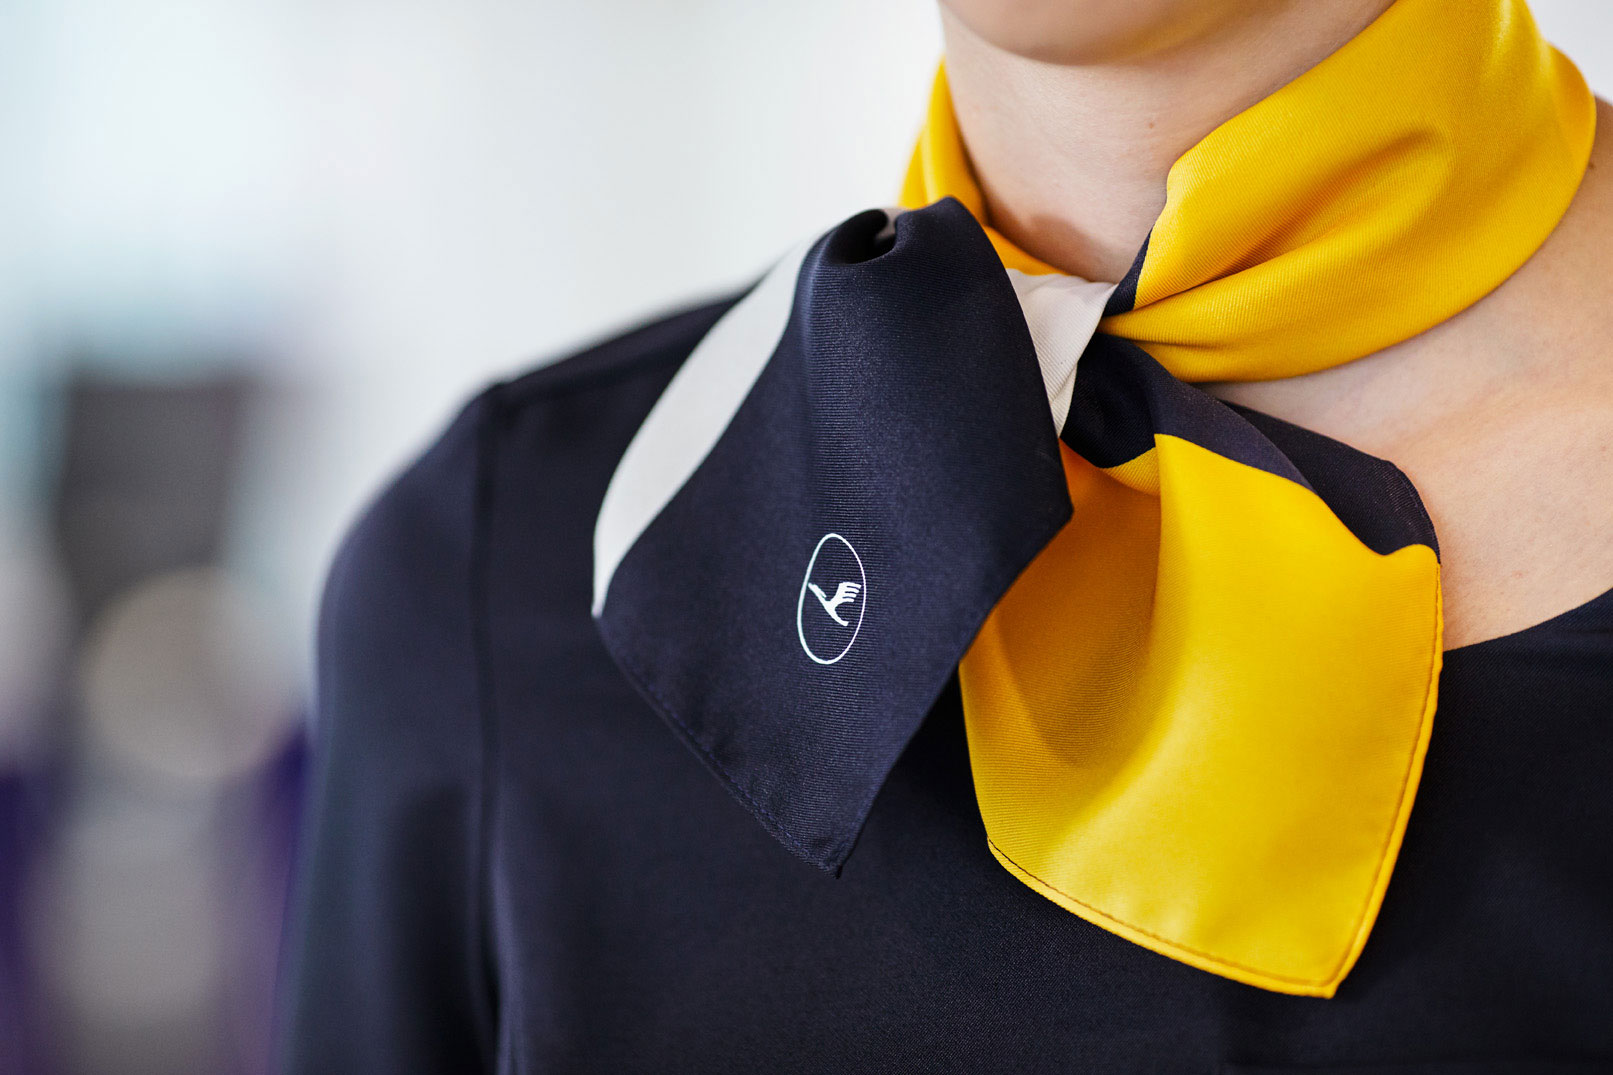 Aicher's yellow will be retained in some instances, such as in the staff uniforms. Image courtesy of Lufthansa